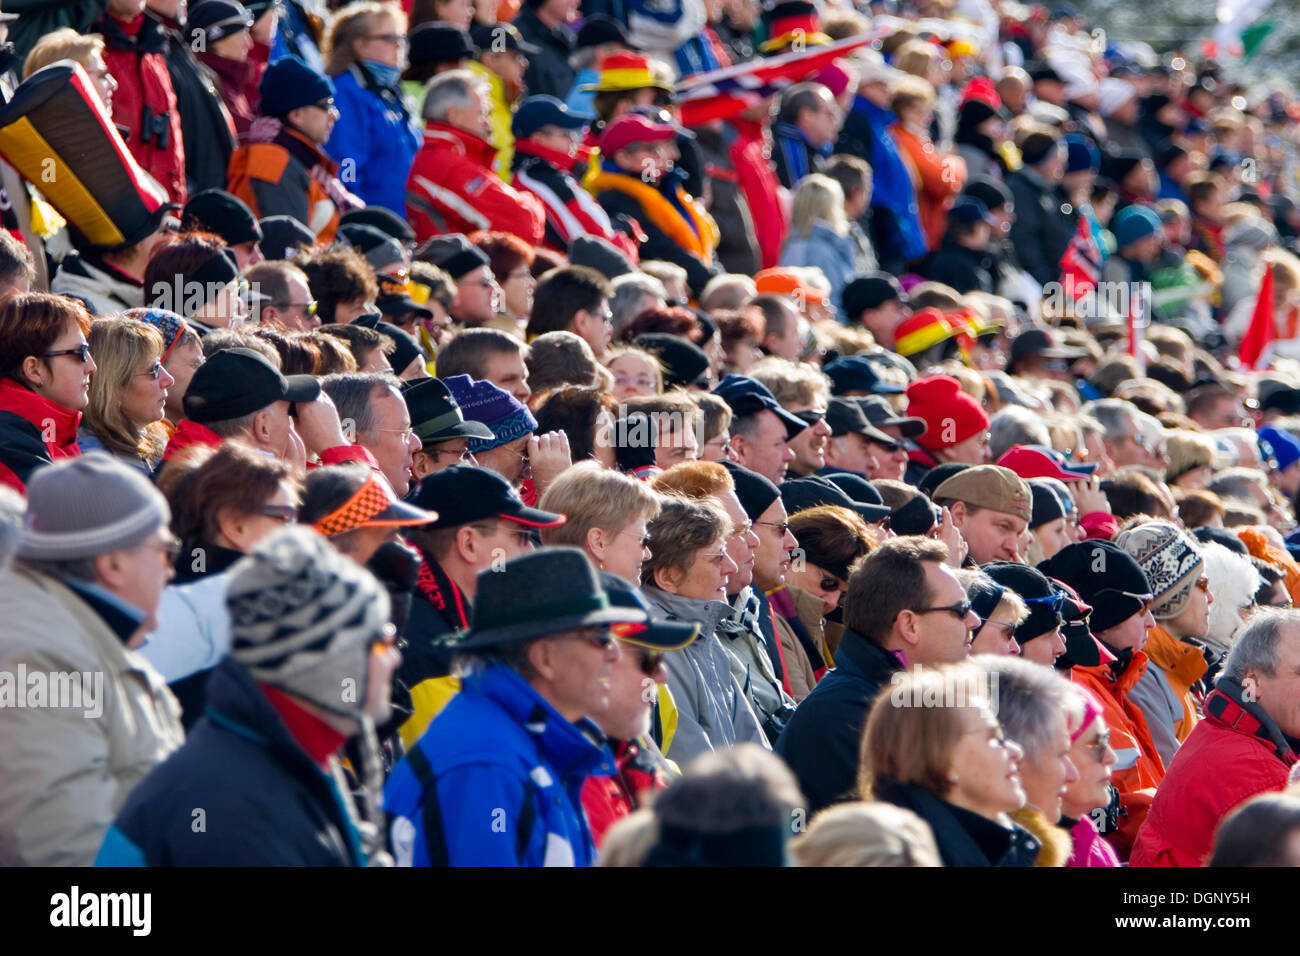 Enthusiastic spectators, Biathlon World Cup, Antholz, province of Bolzano-Bozen, Italy, Europe Stock Photo